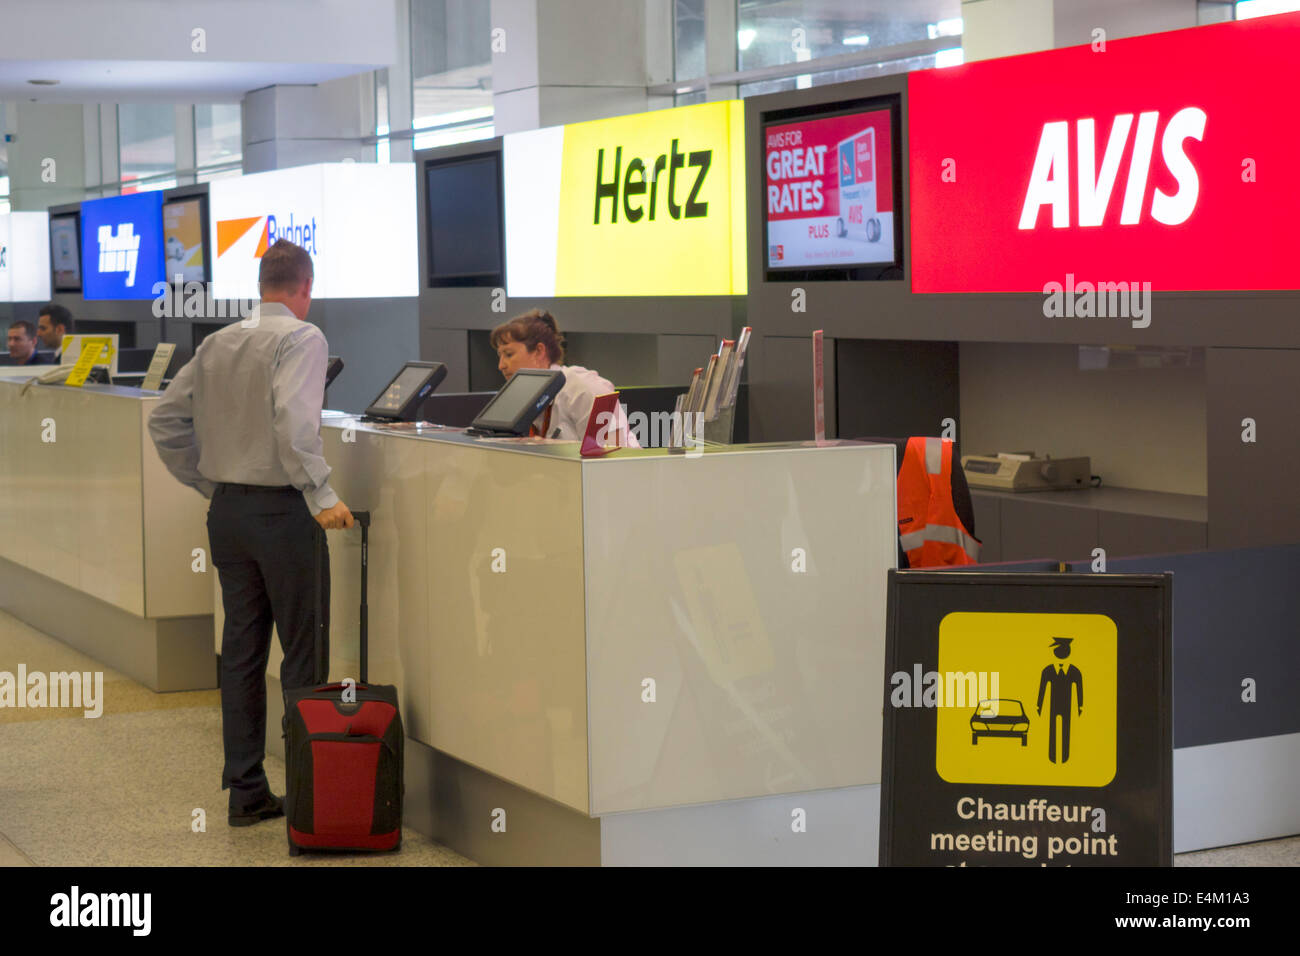 Car Rental Counter Stock Photos Amp Car Rental Counter Stock